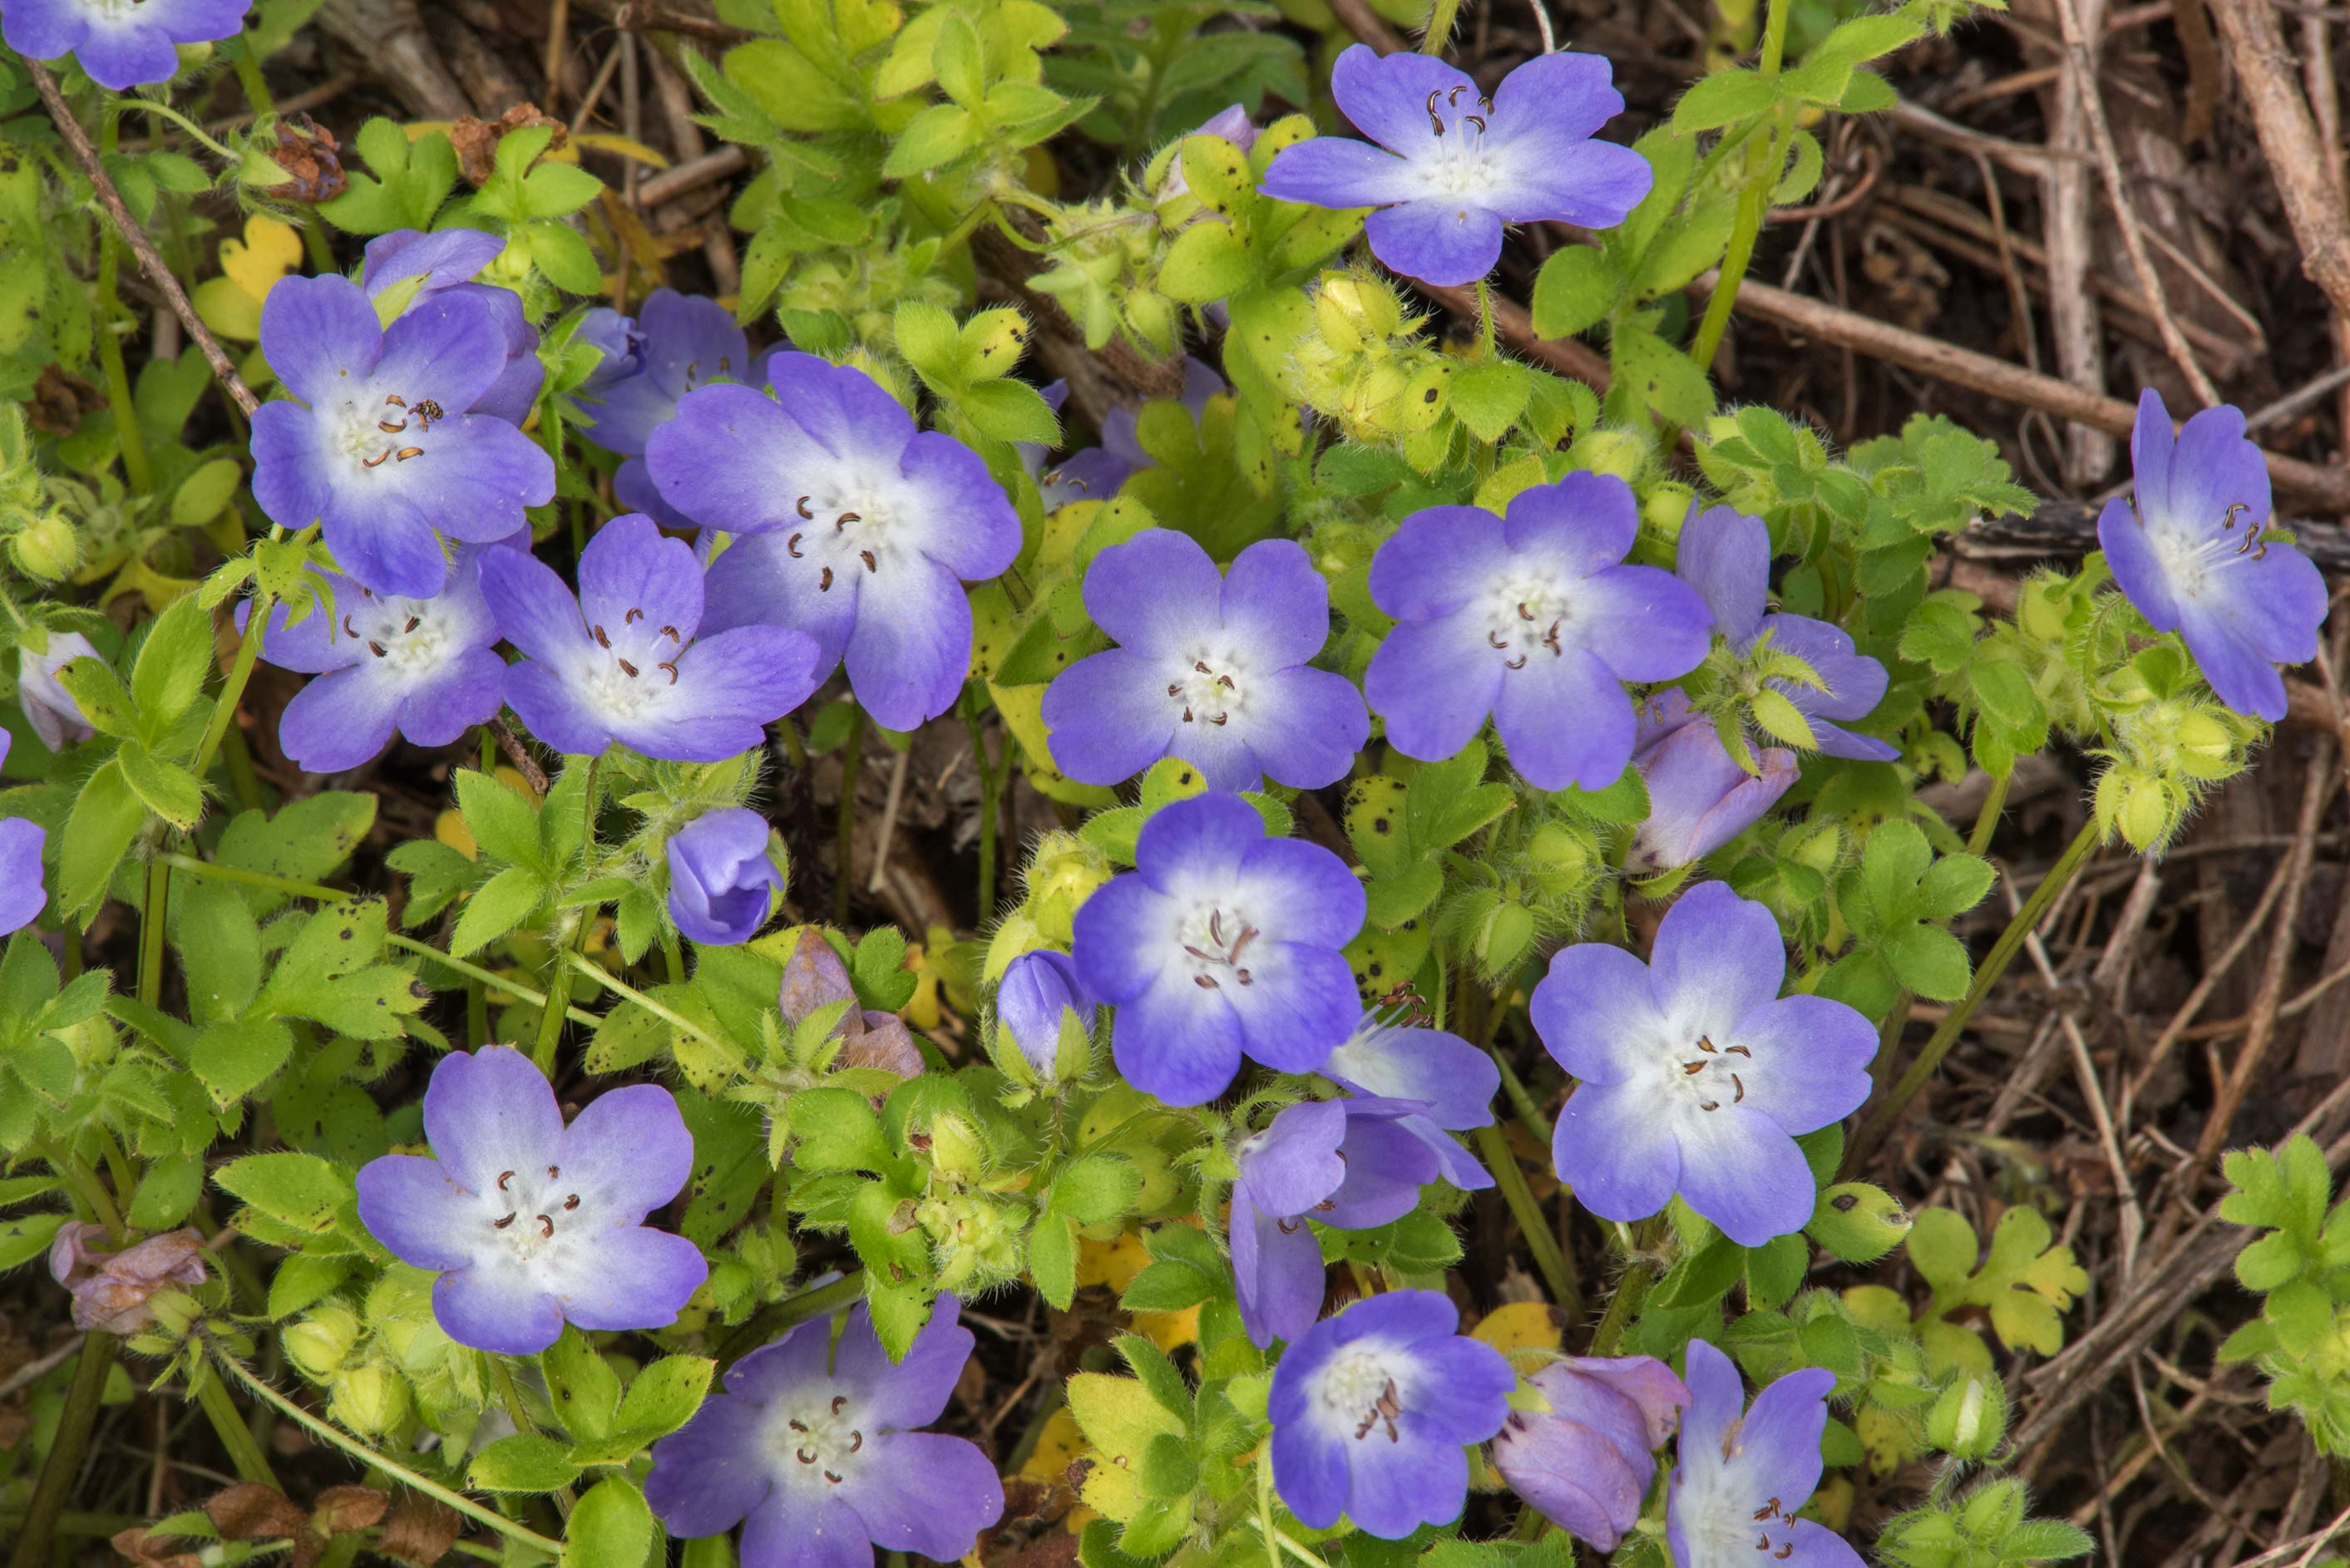 Baby blue eyes (flannel breeches, Nemophila...State Historic Site. Washington, Texas